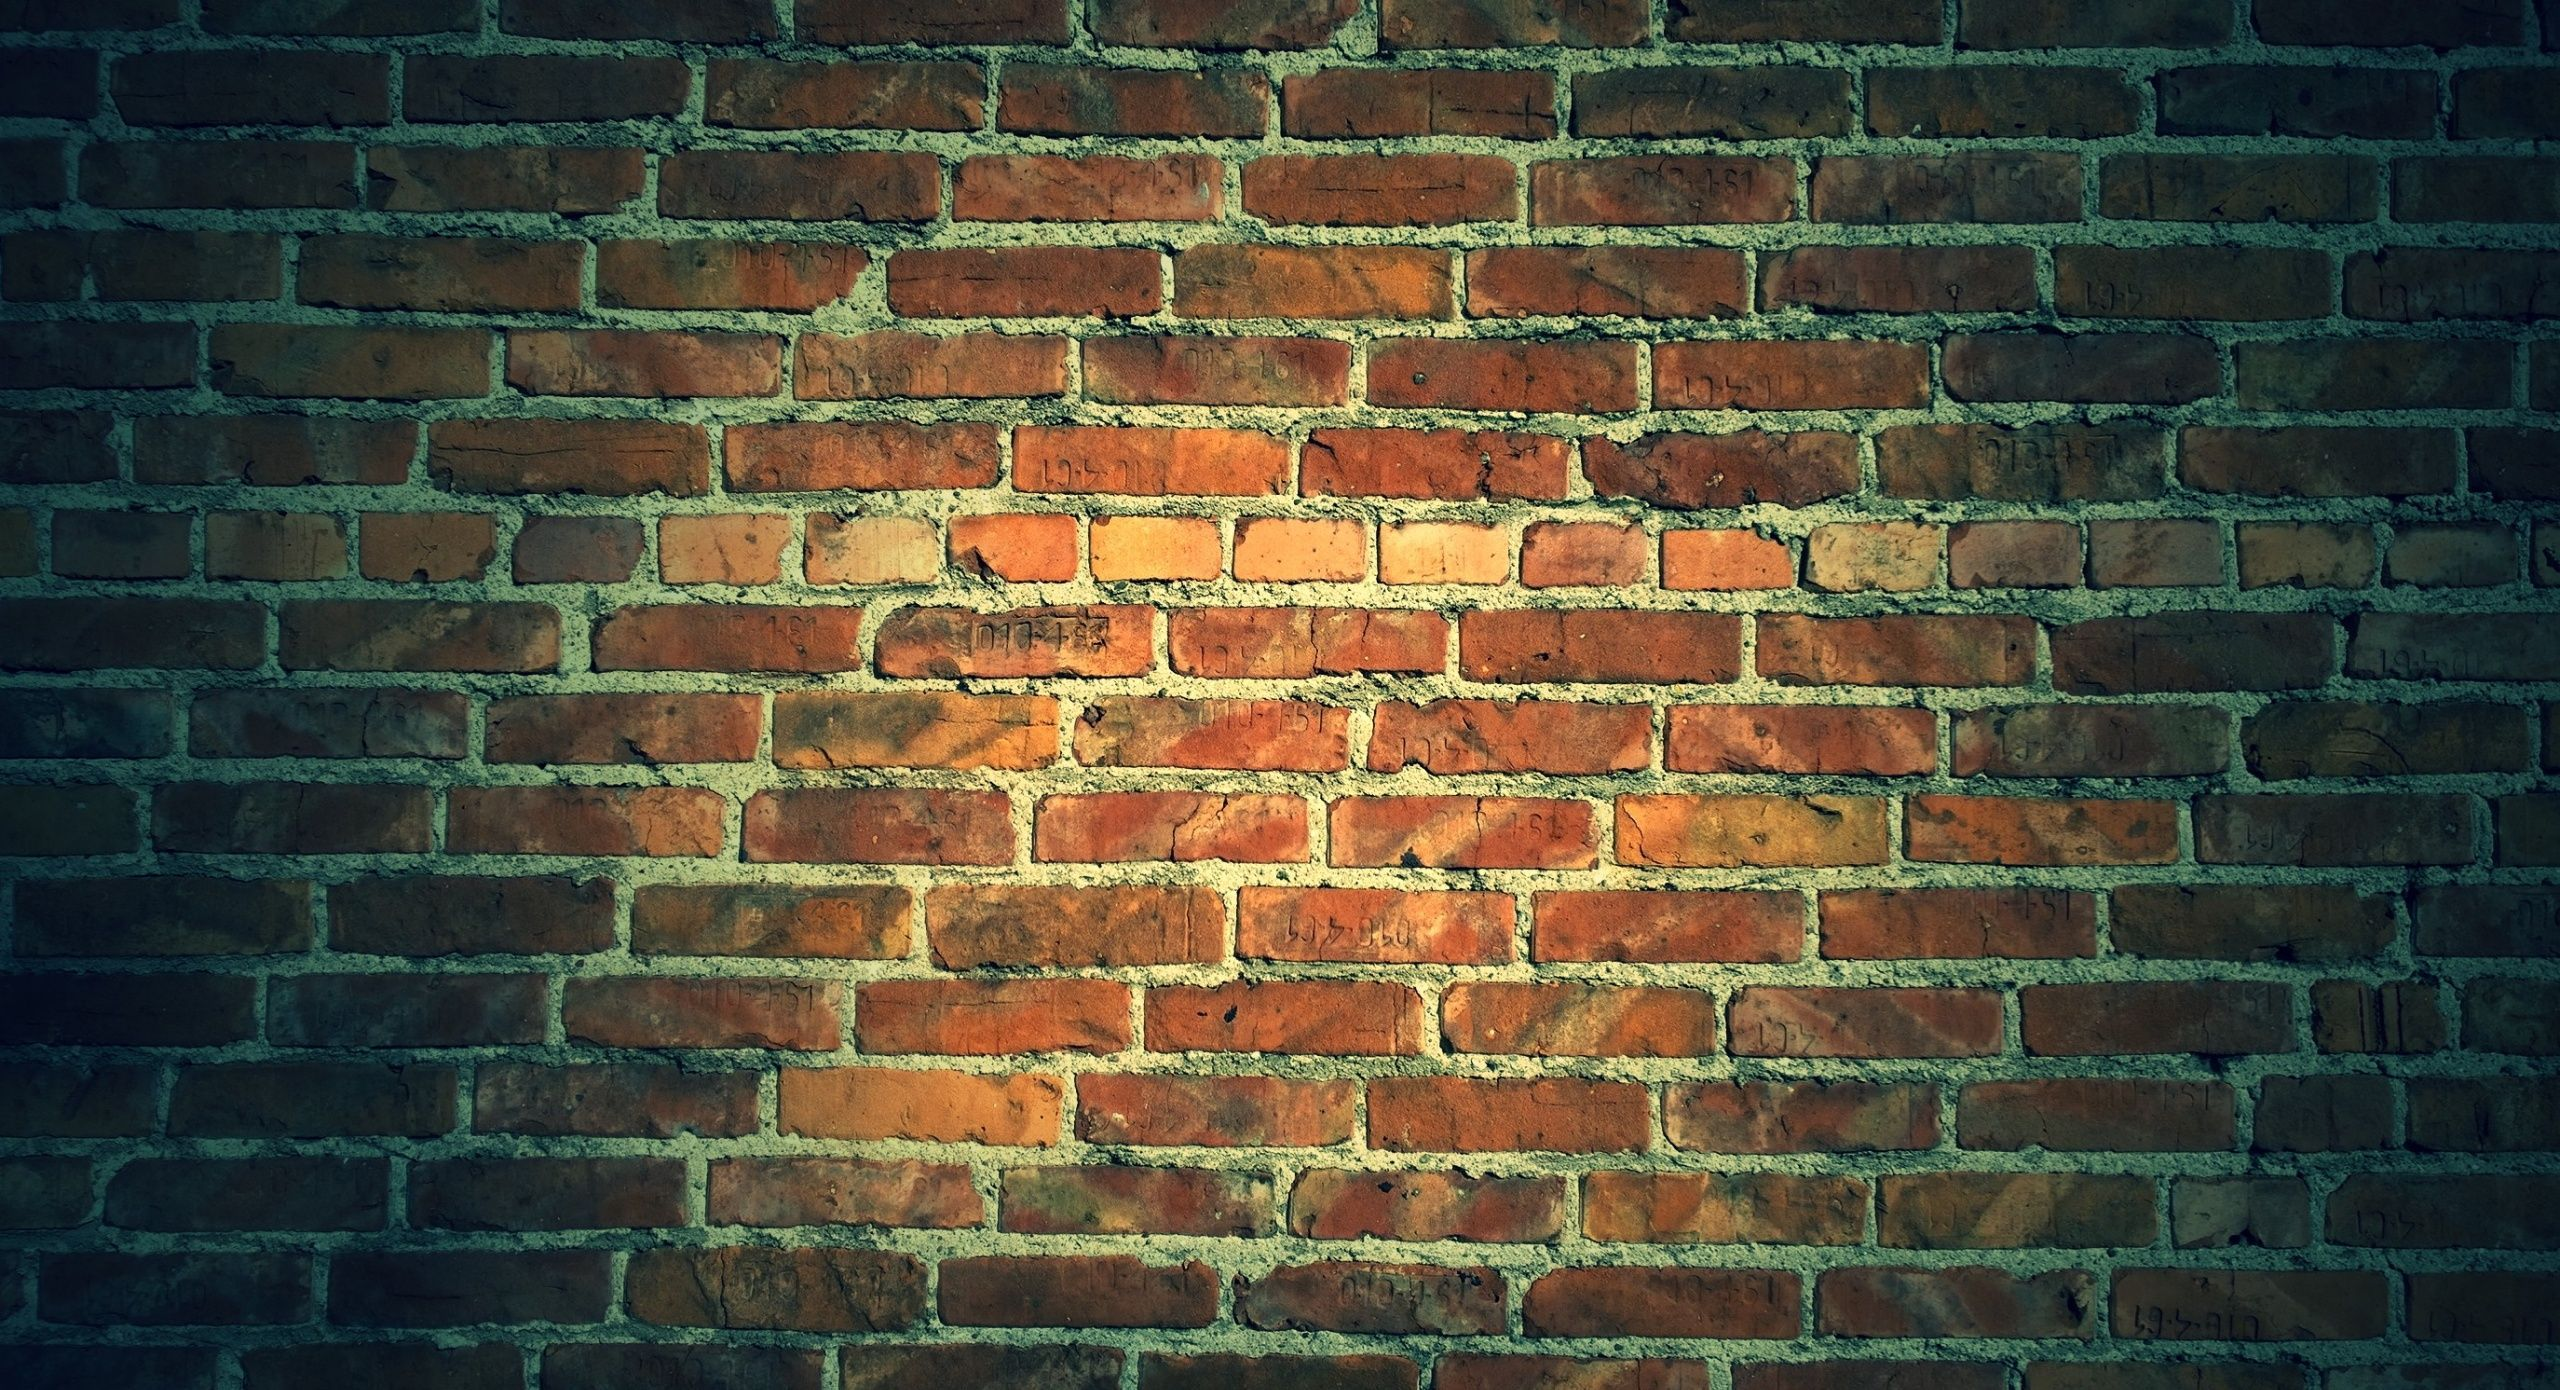 Brick Theme Background Images  Brick Category